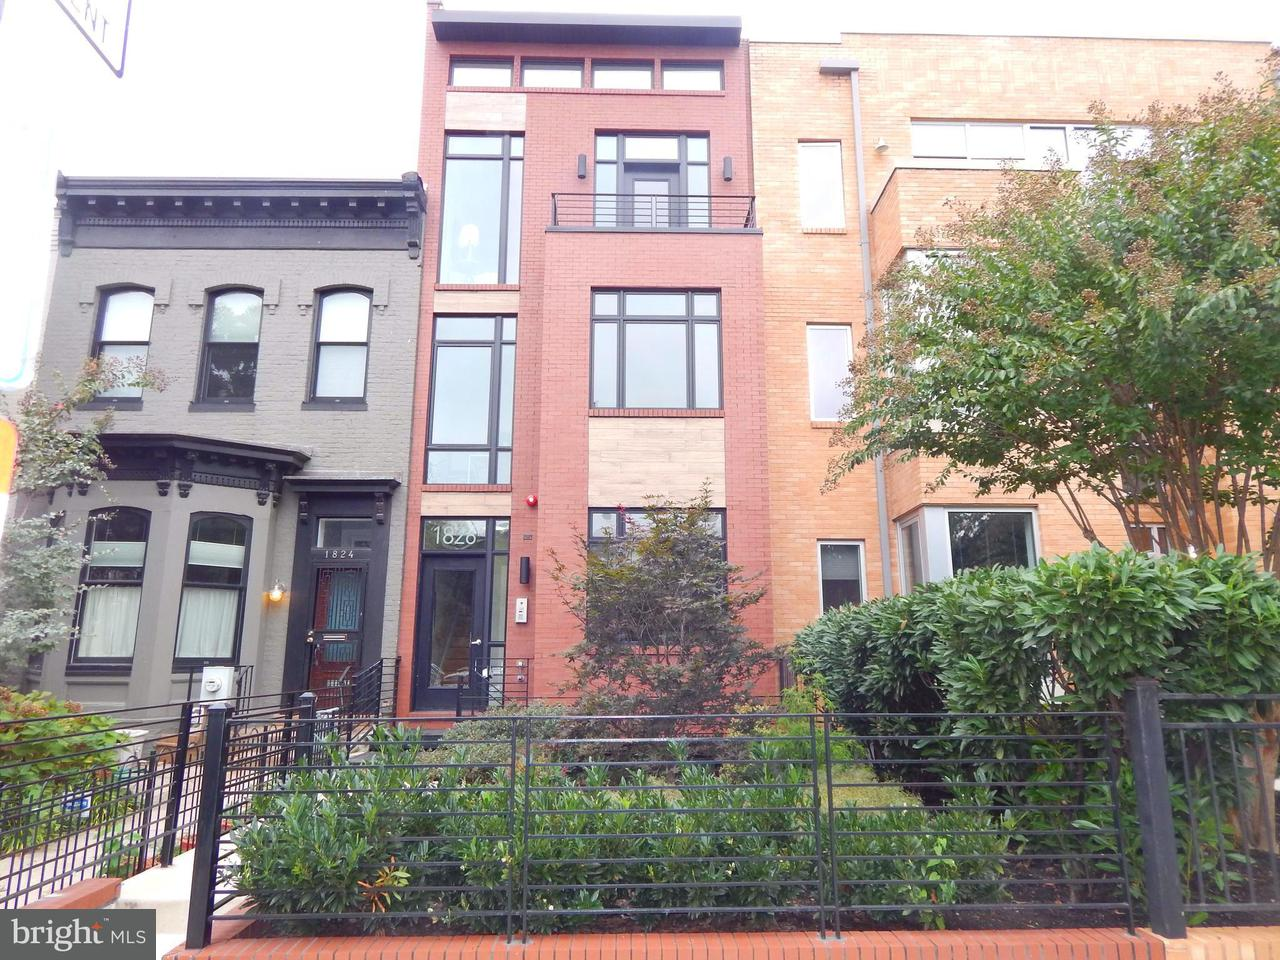 Other Residential for Rent at 1826 11th St NW #3 Washington, District Of Columbia 20001 United States